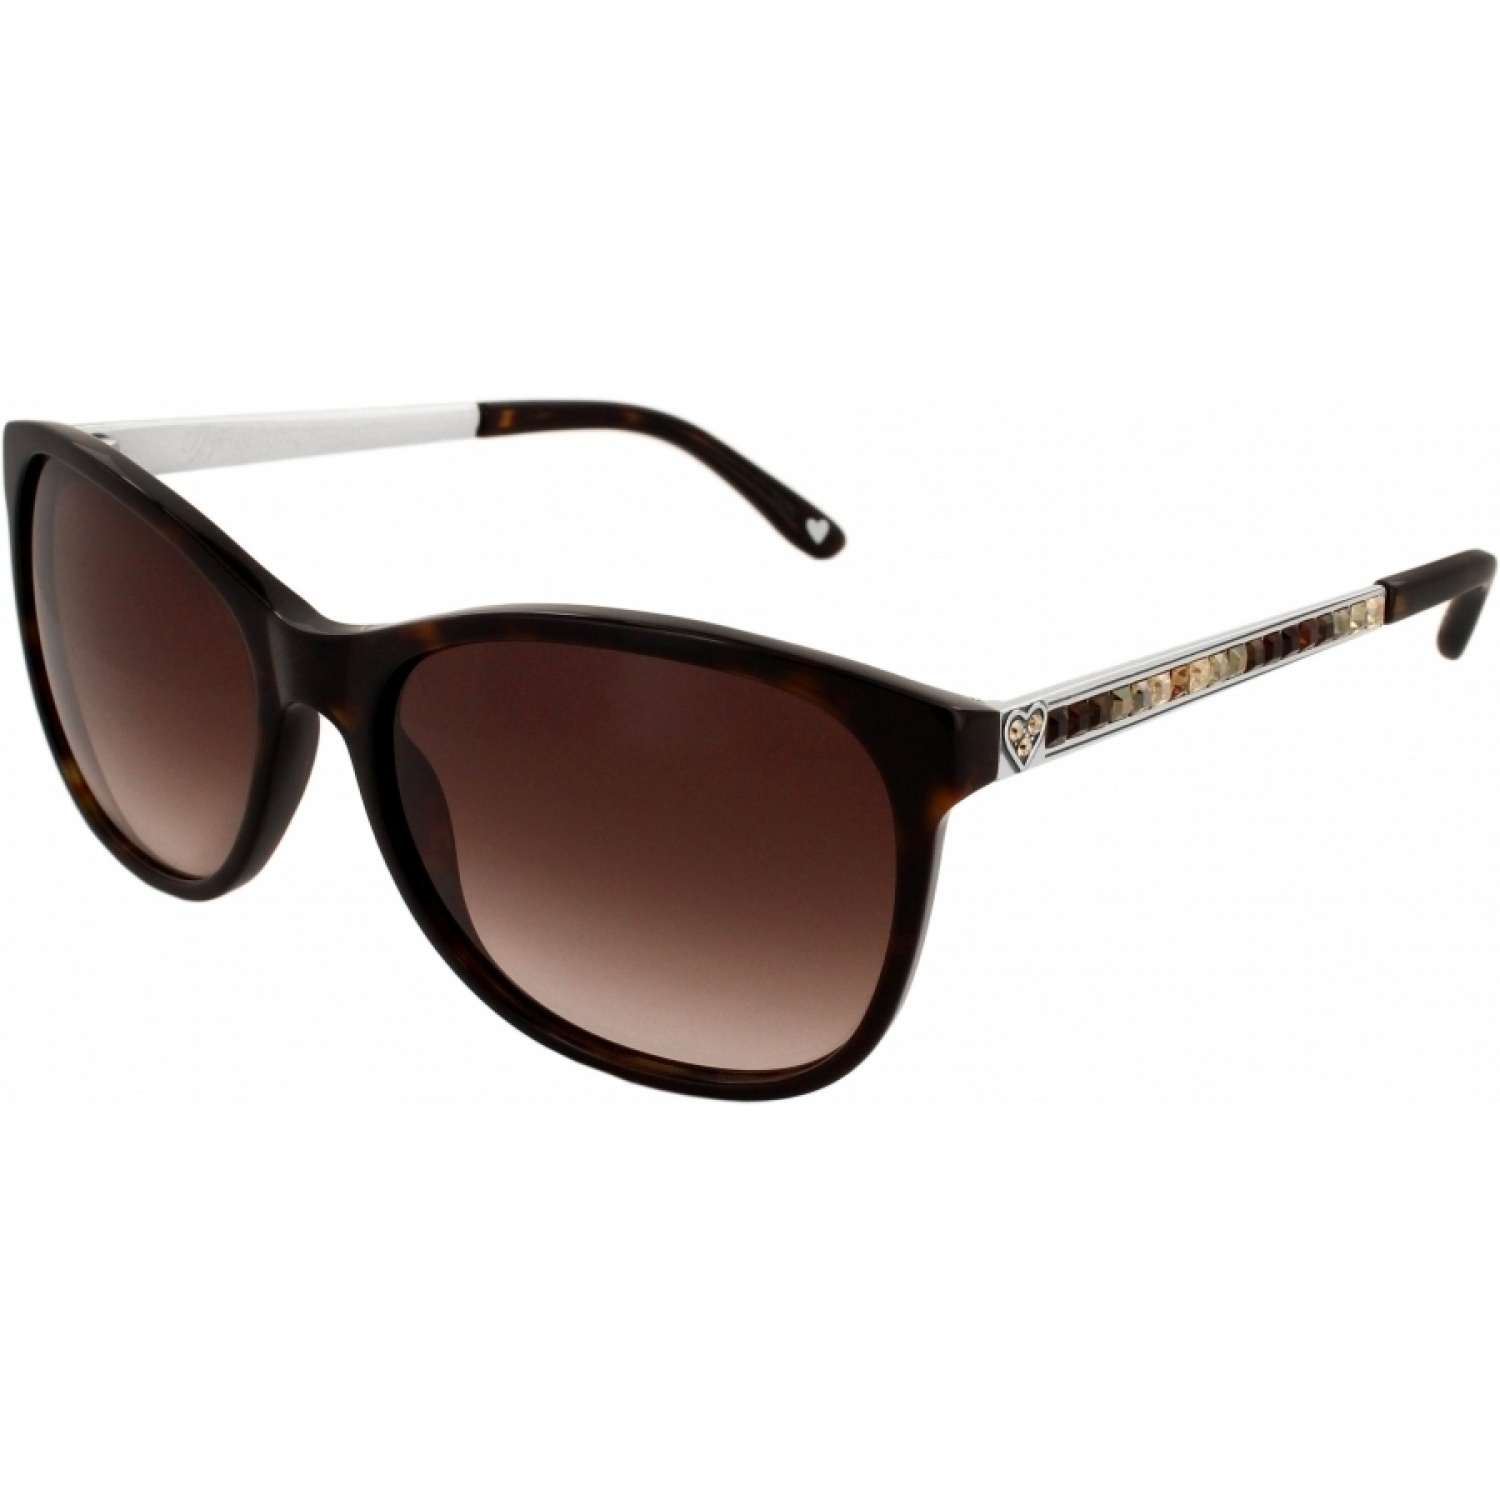 44c741680d936 Spectrum Spectrum Sunglasses Sunglasses